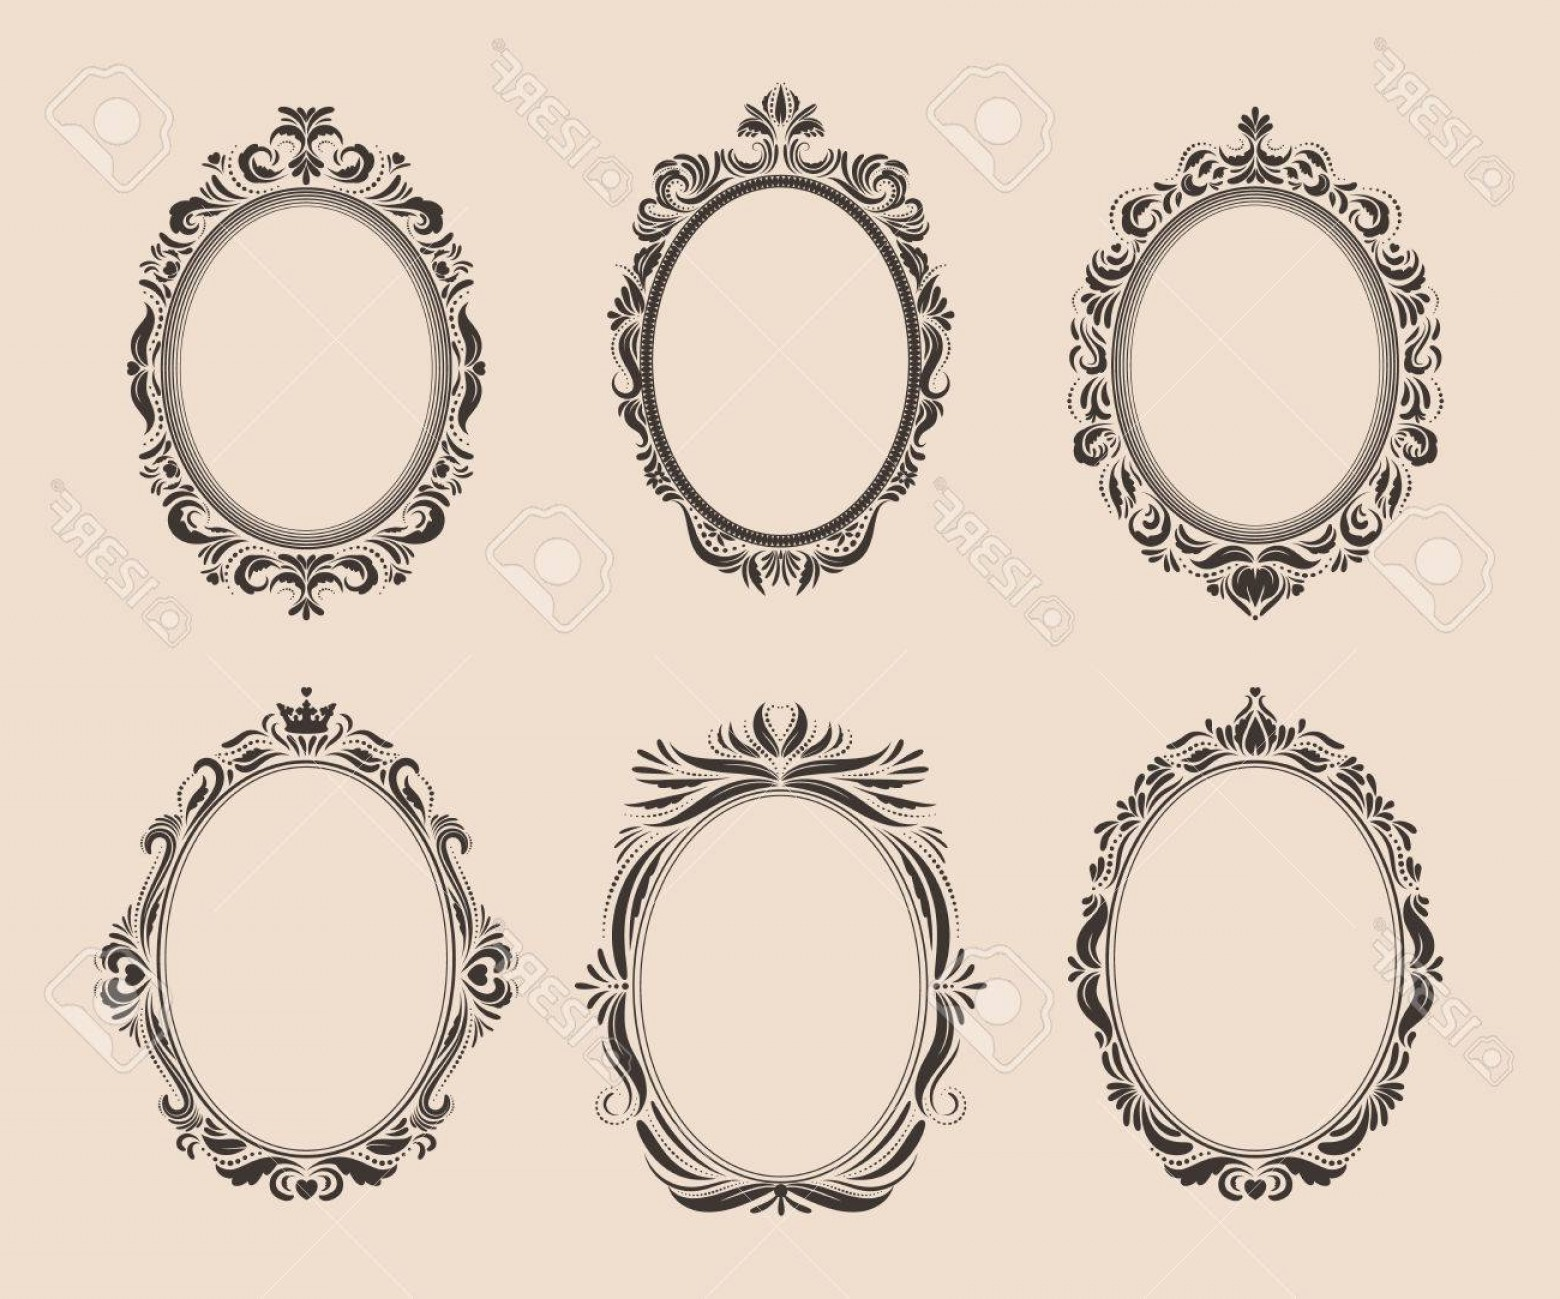 Vector Ornate Shaped Frame: Photostock Vector Set Of Decorative Oval Vintage Frames And Borders Victorian And Baroque Style Design Elegant Royal S